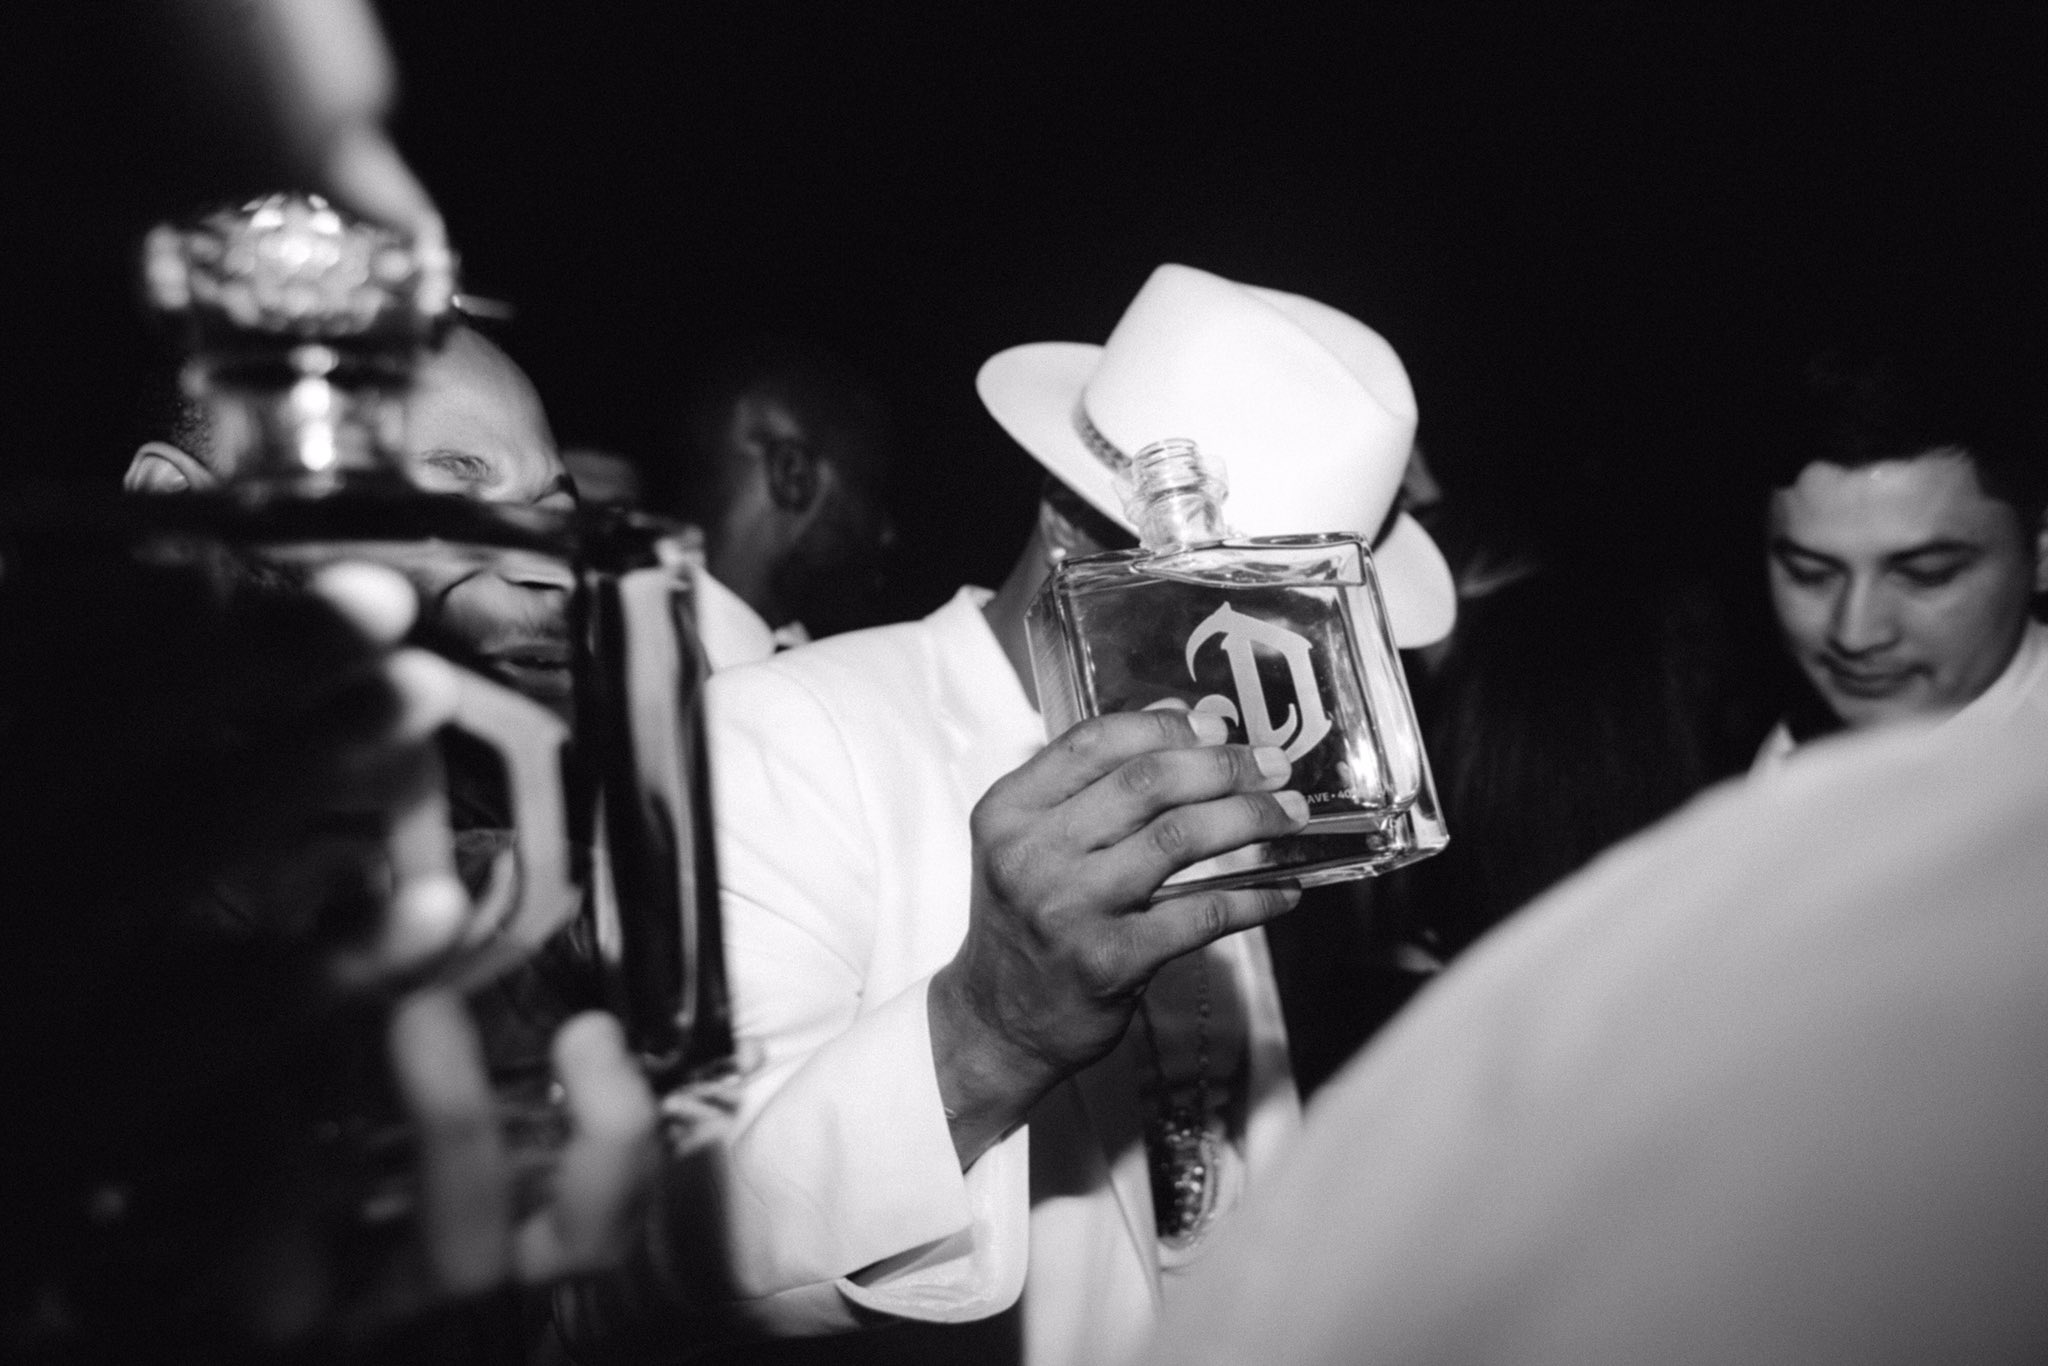 @DeLeonTequila Lifestyle #TheNextLevel #tryIT https://t.co/lpdaUC9wvT